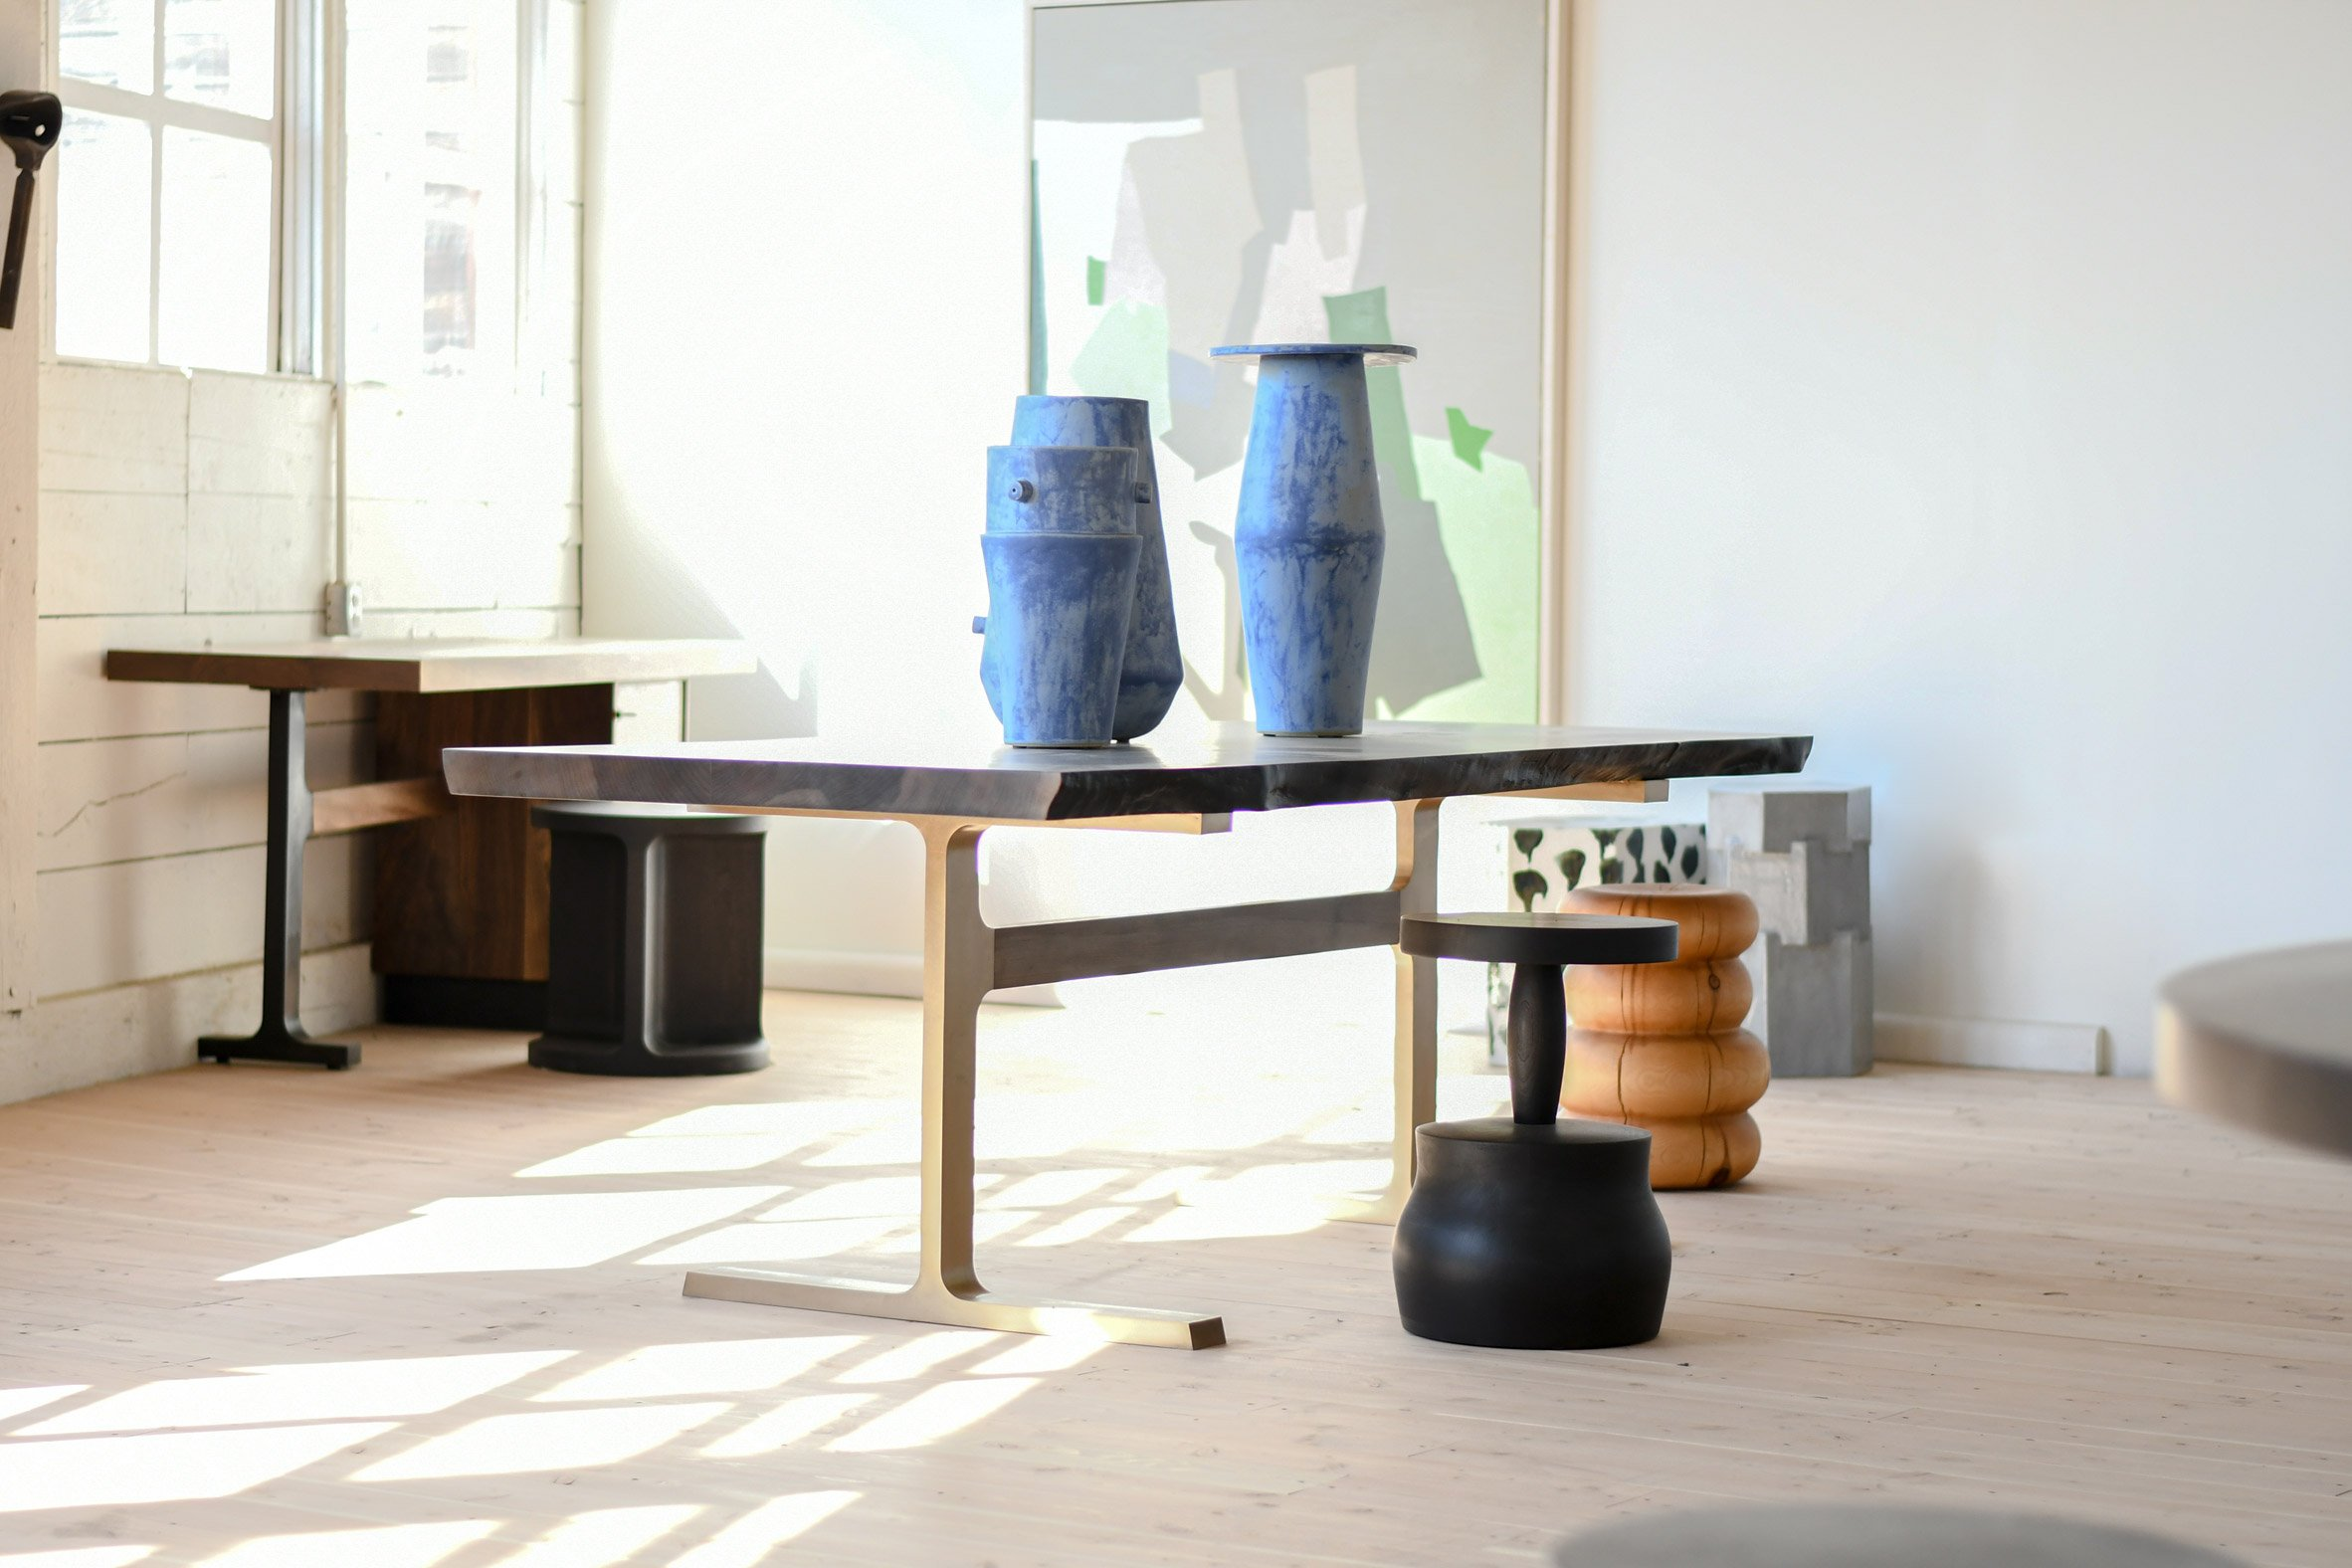 Vases at Alpenglow Projects